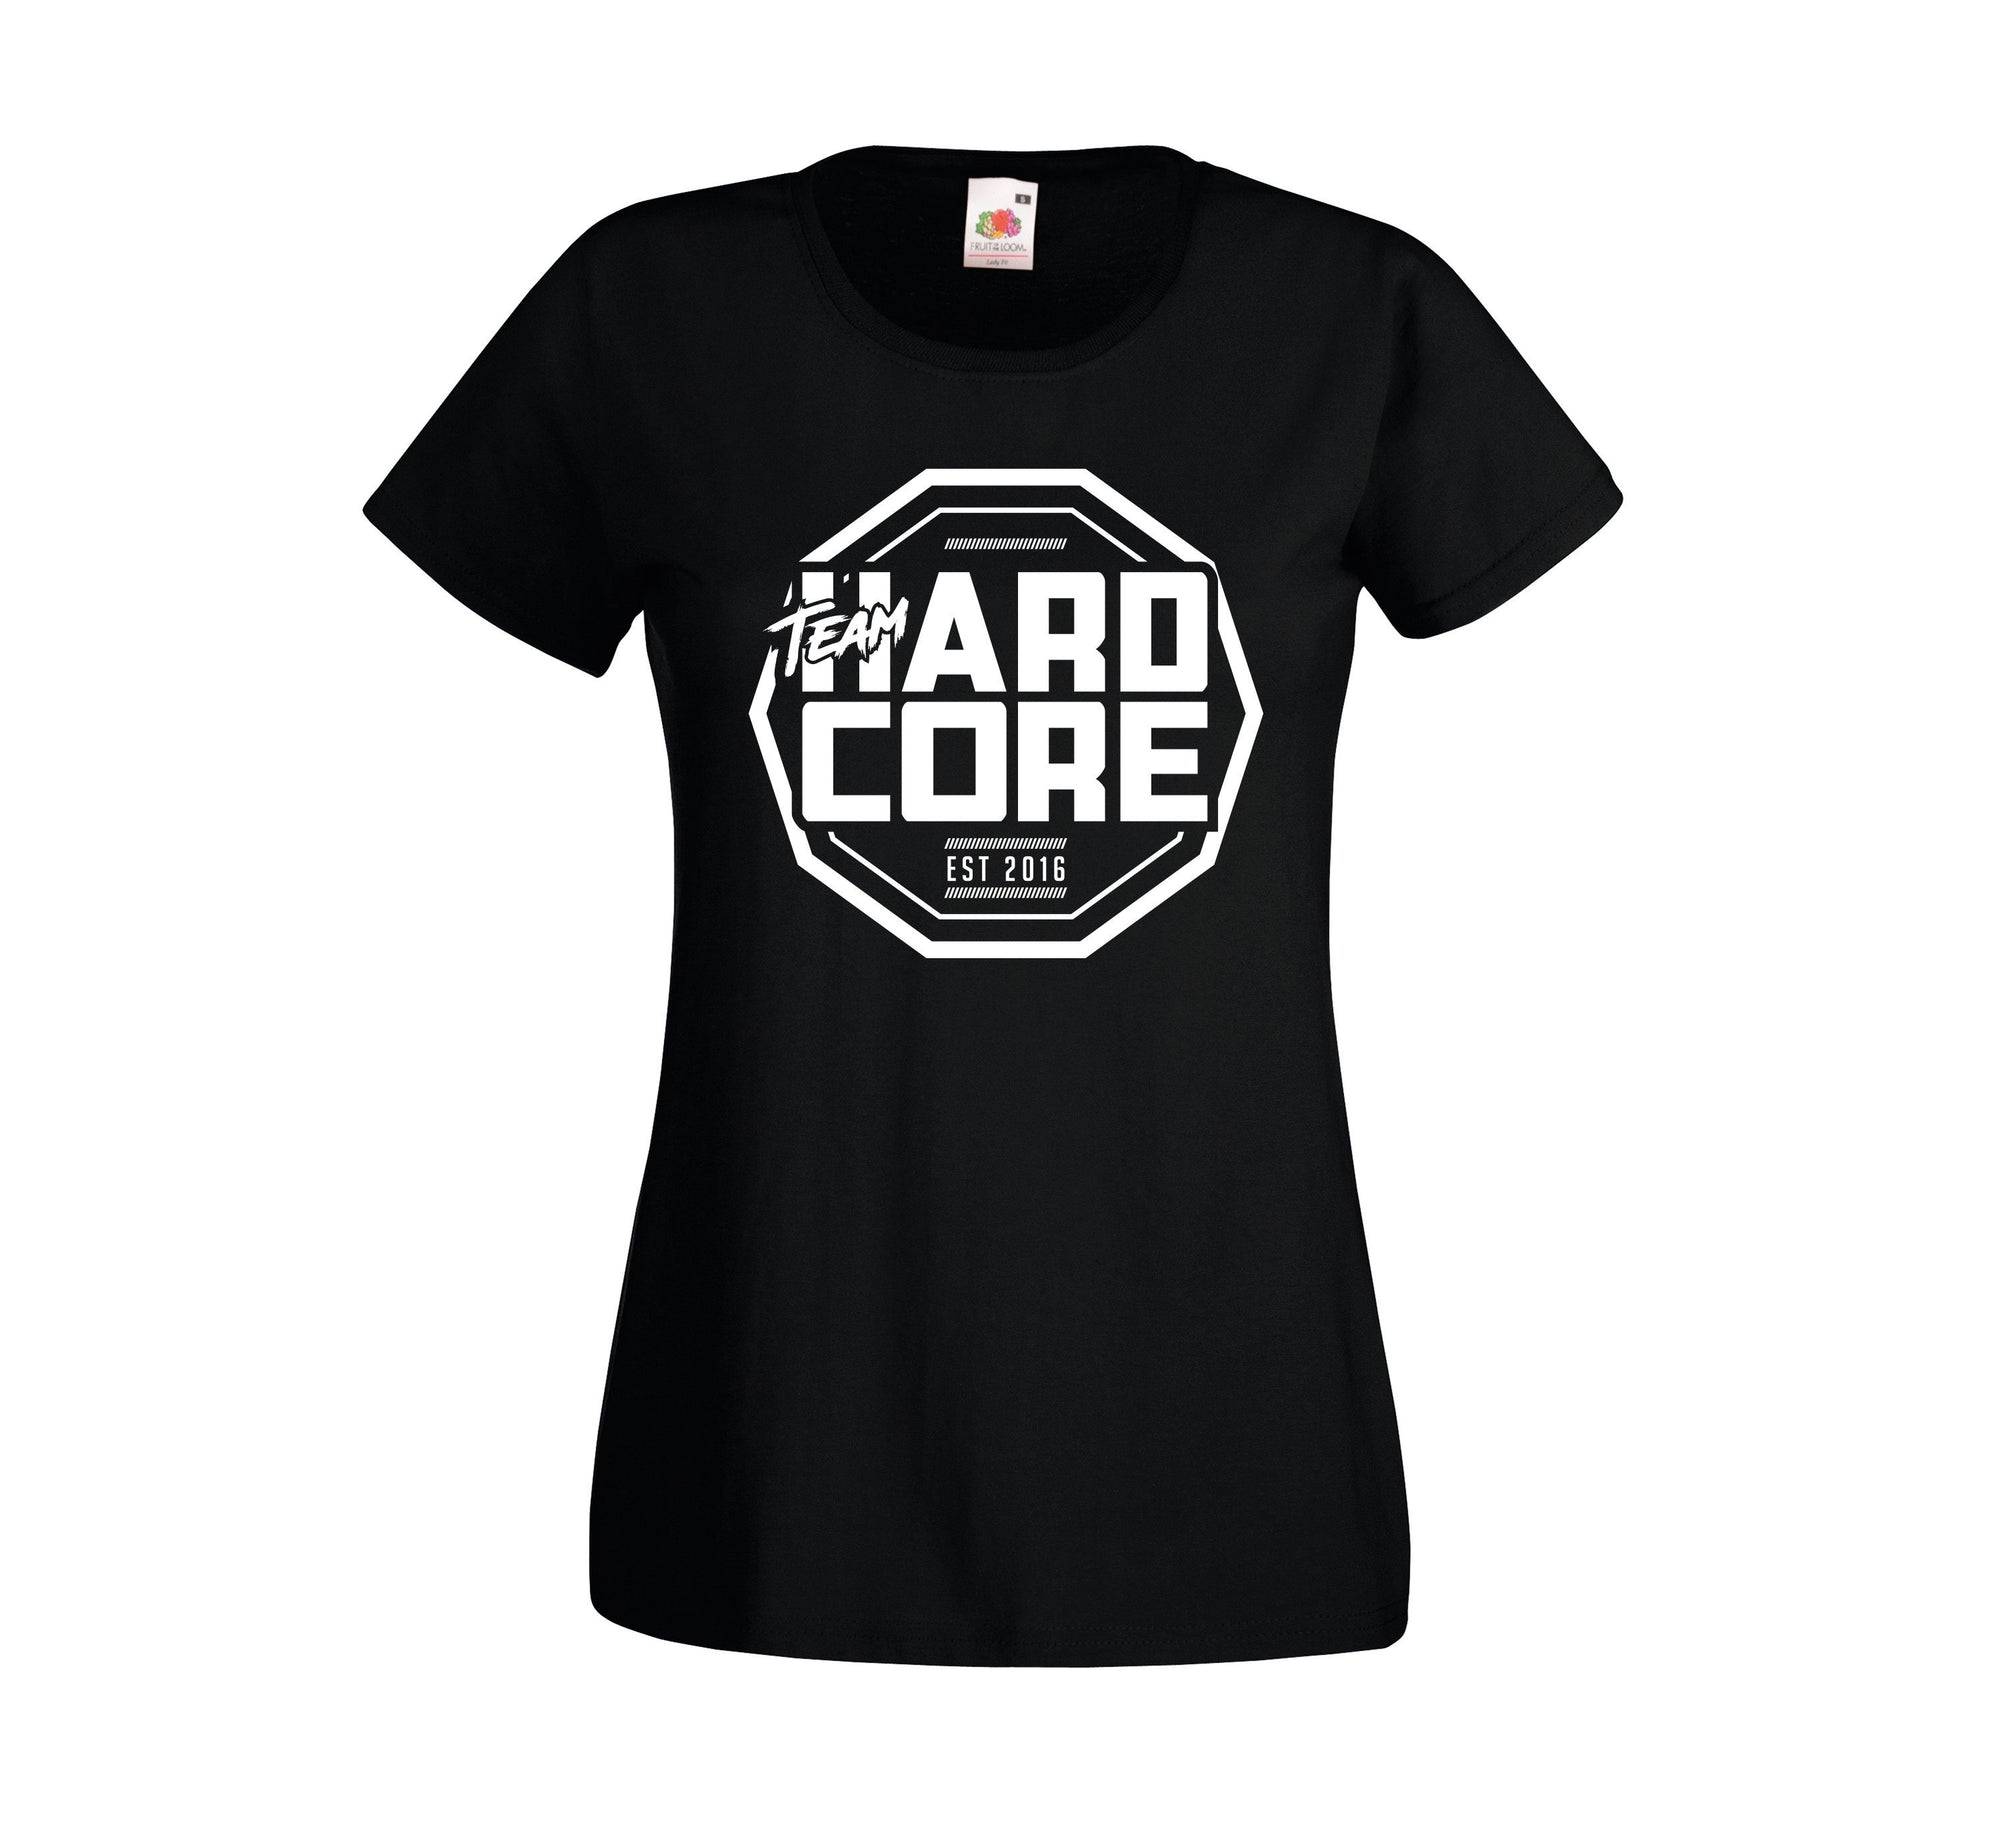 Team Hardcore Women's T-Shirt - Black & White Team Hardcore Small